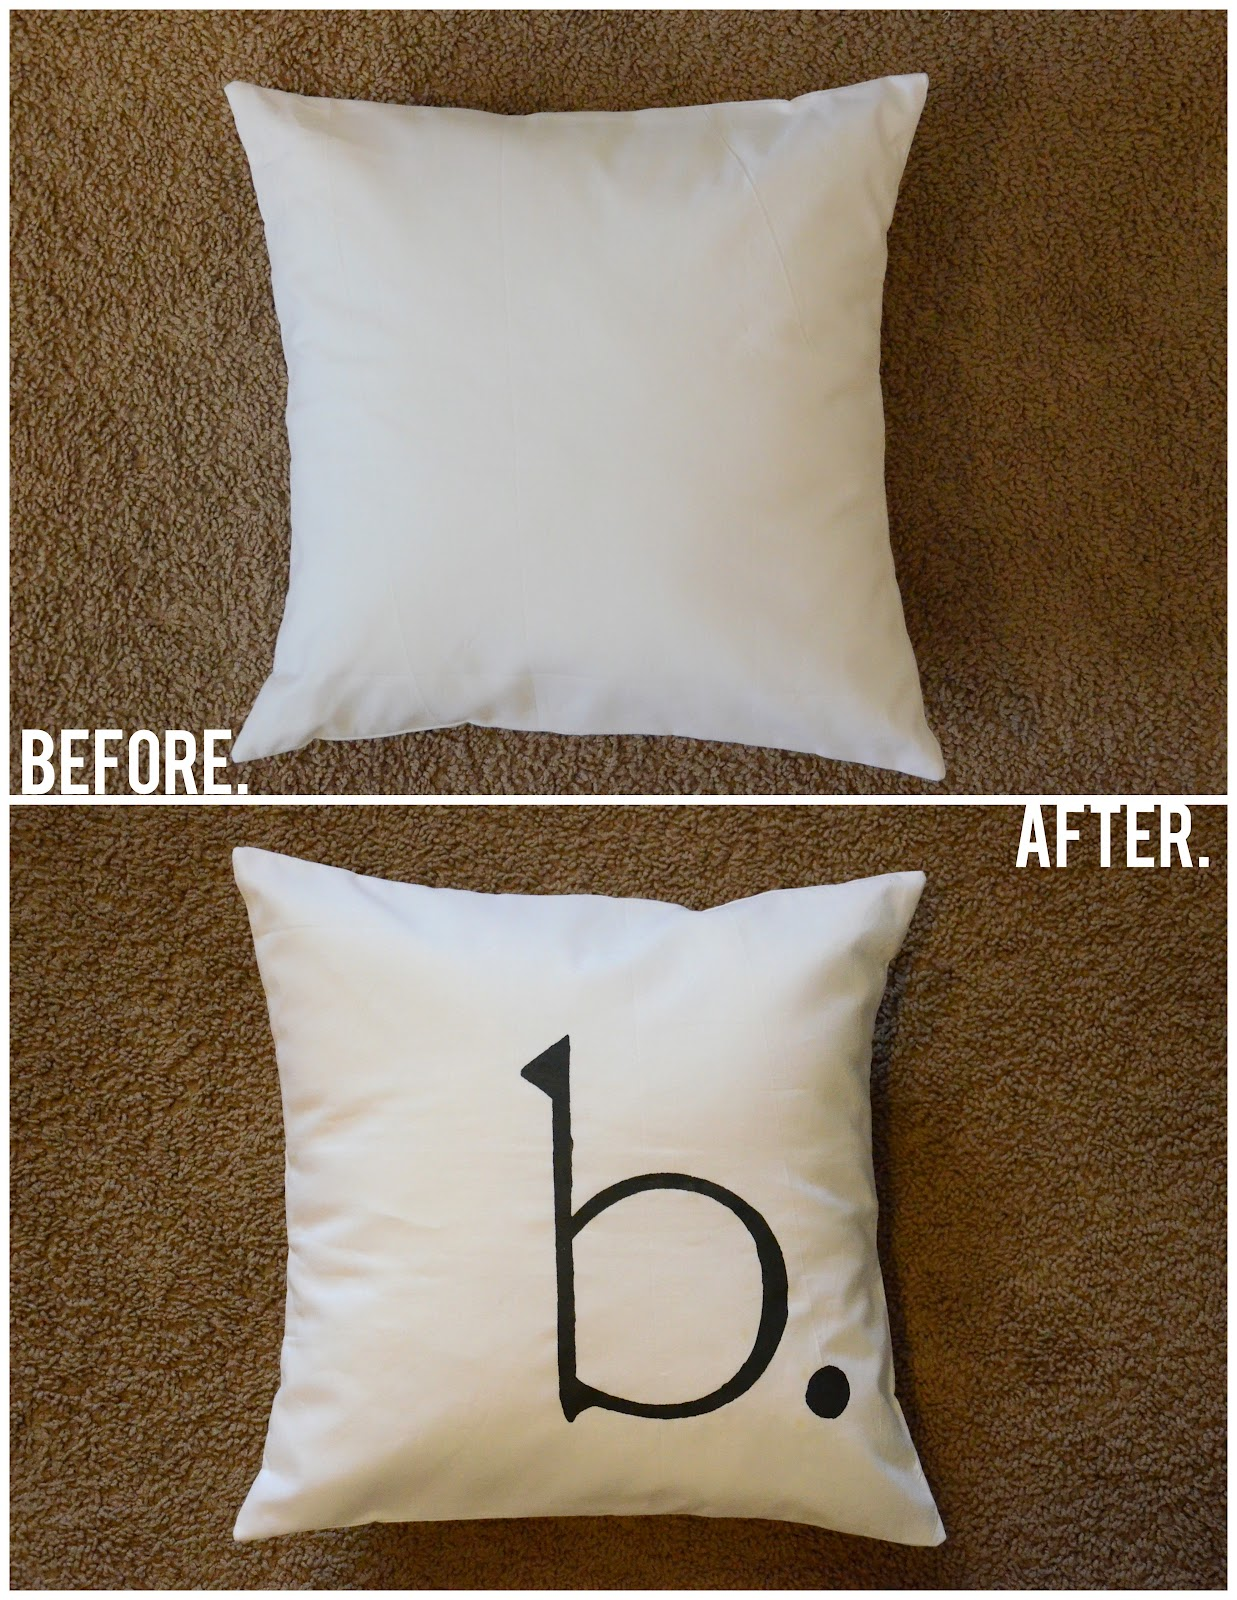 com from pin favorite monogrammed listing my inserts a shop s pillow personal etsy